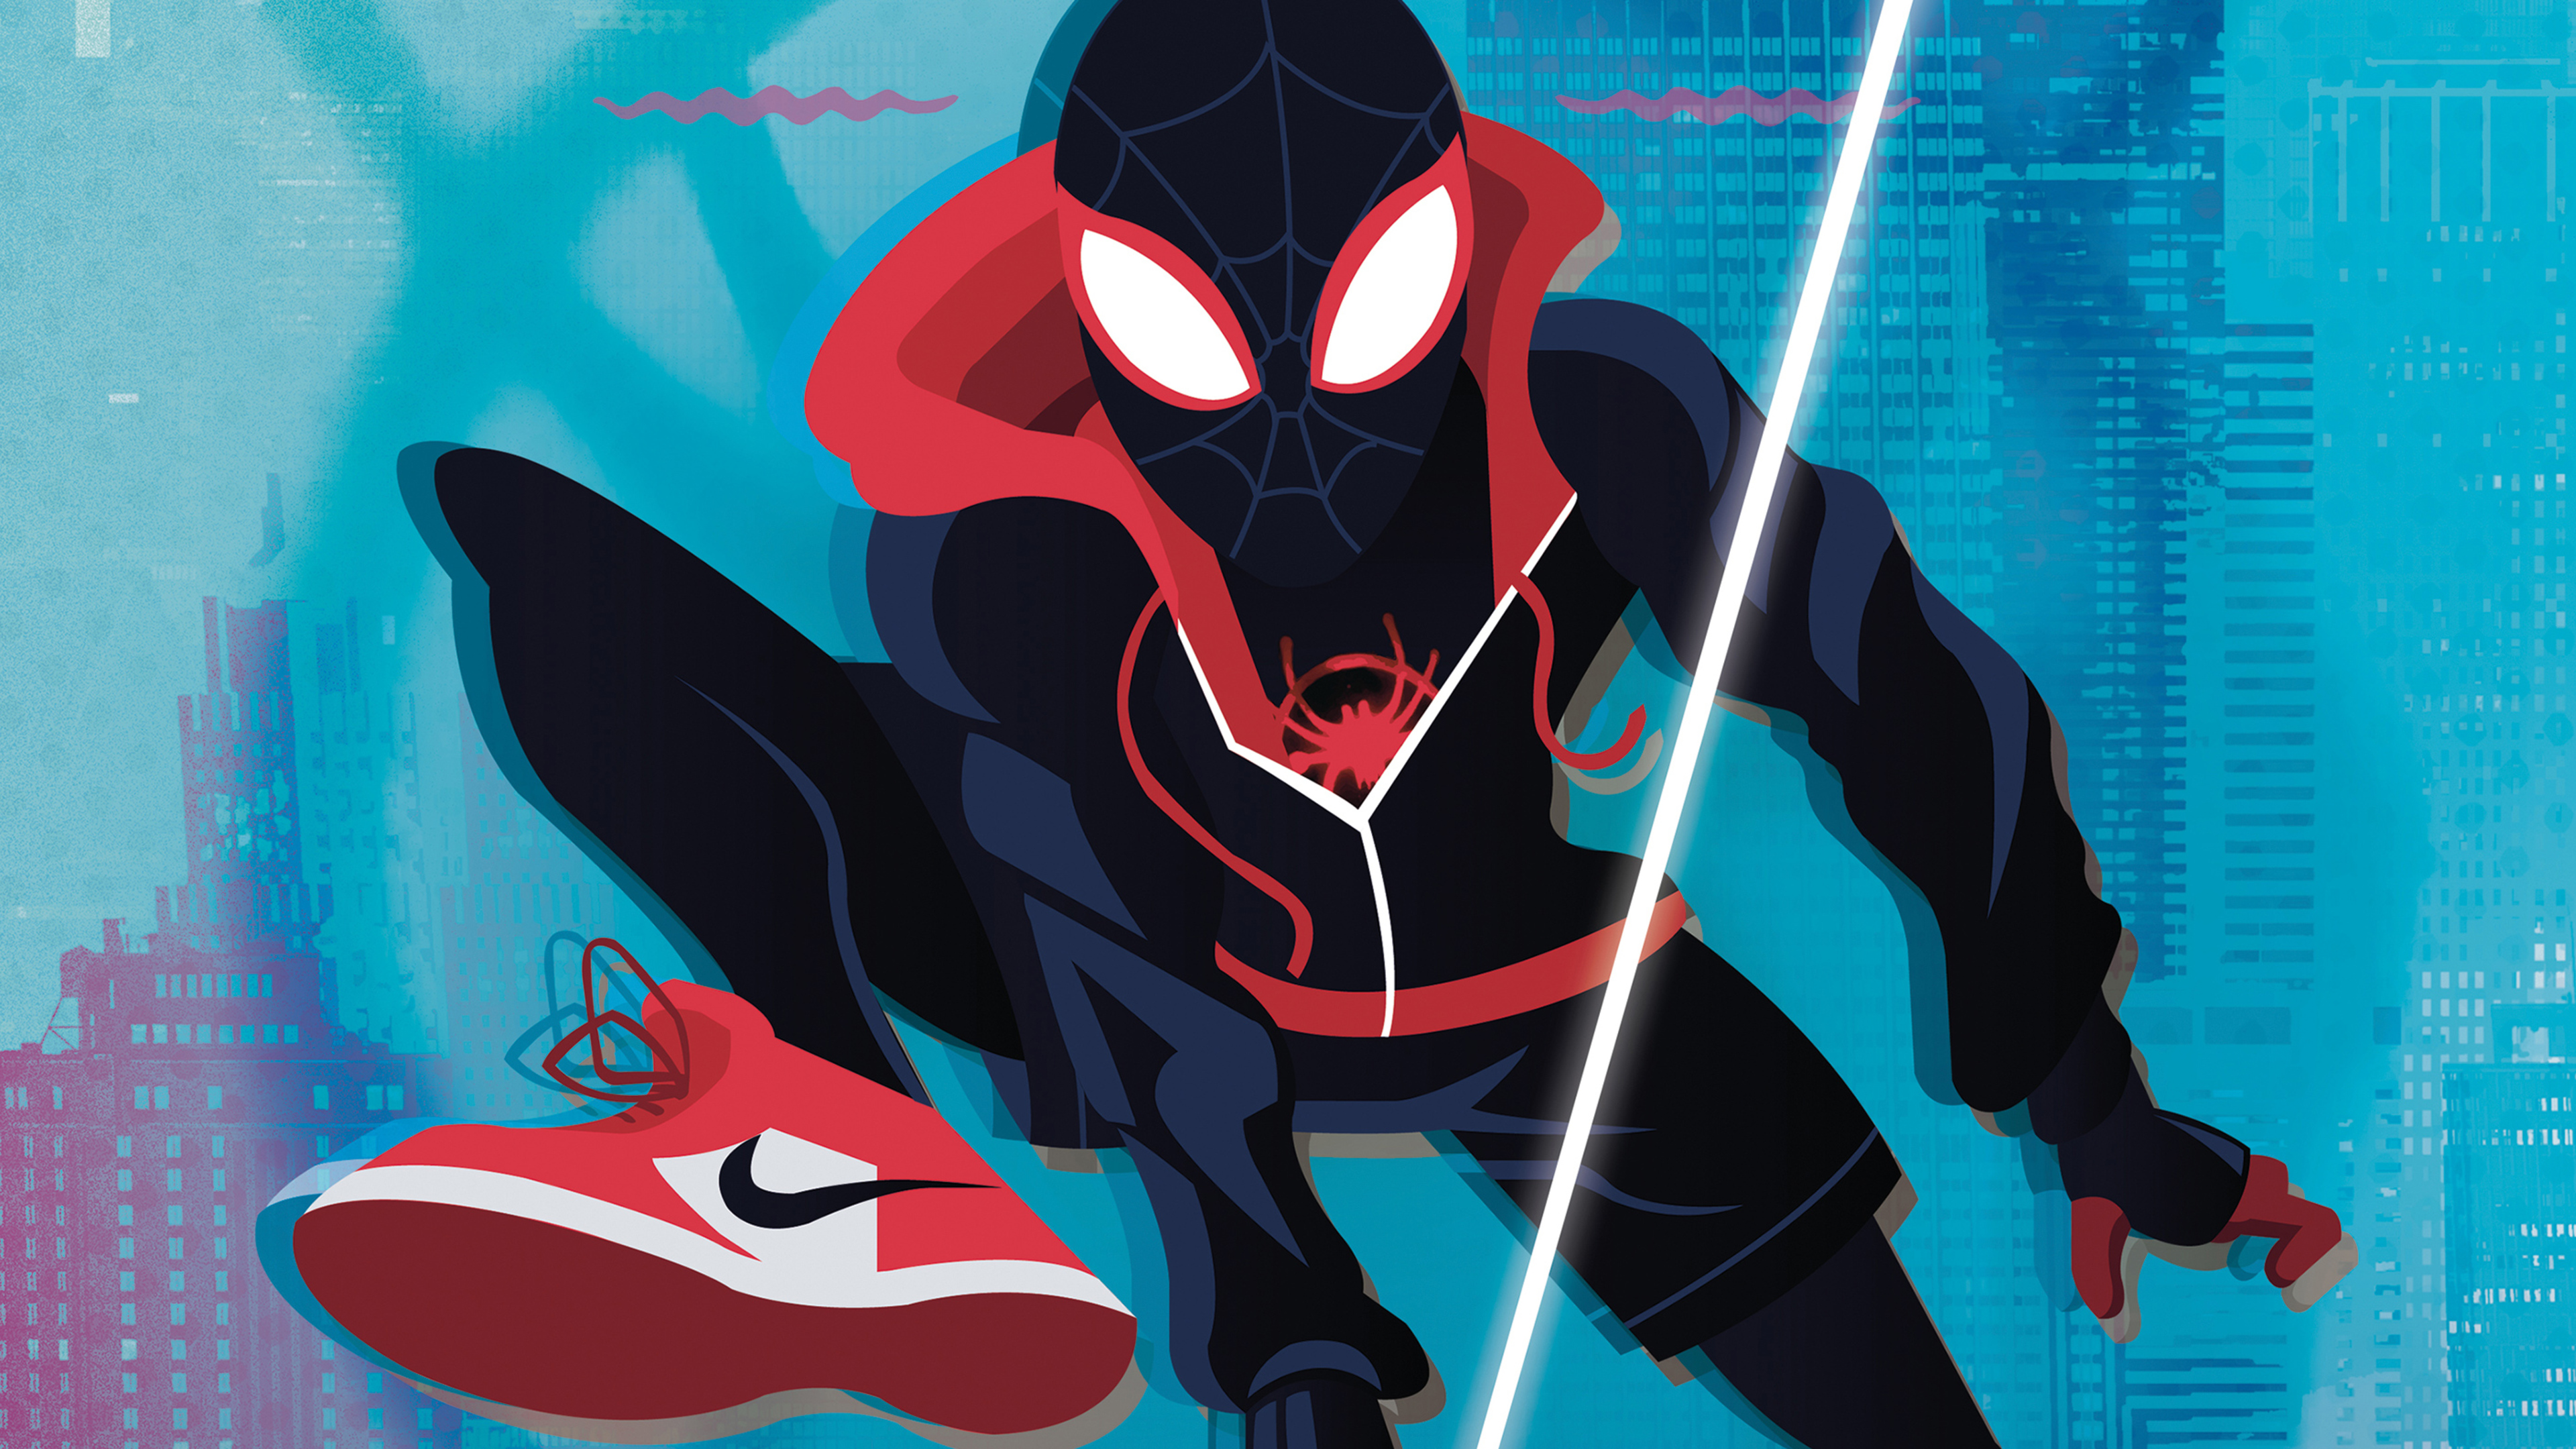 spiderman-into-spider-verse-new-art-4k-j4.jpg